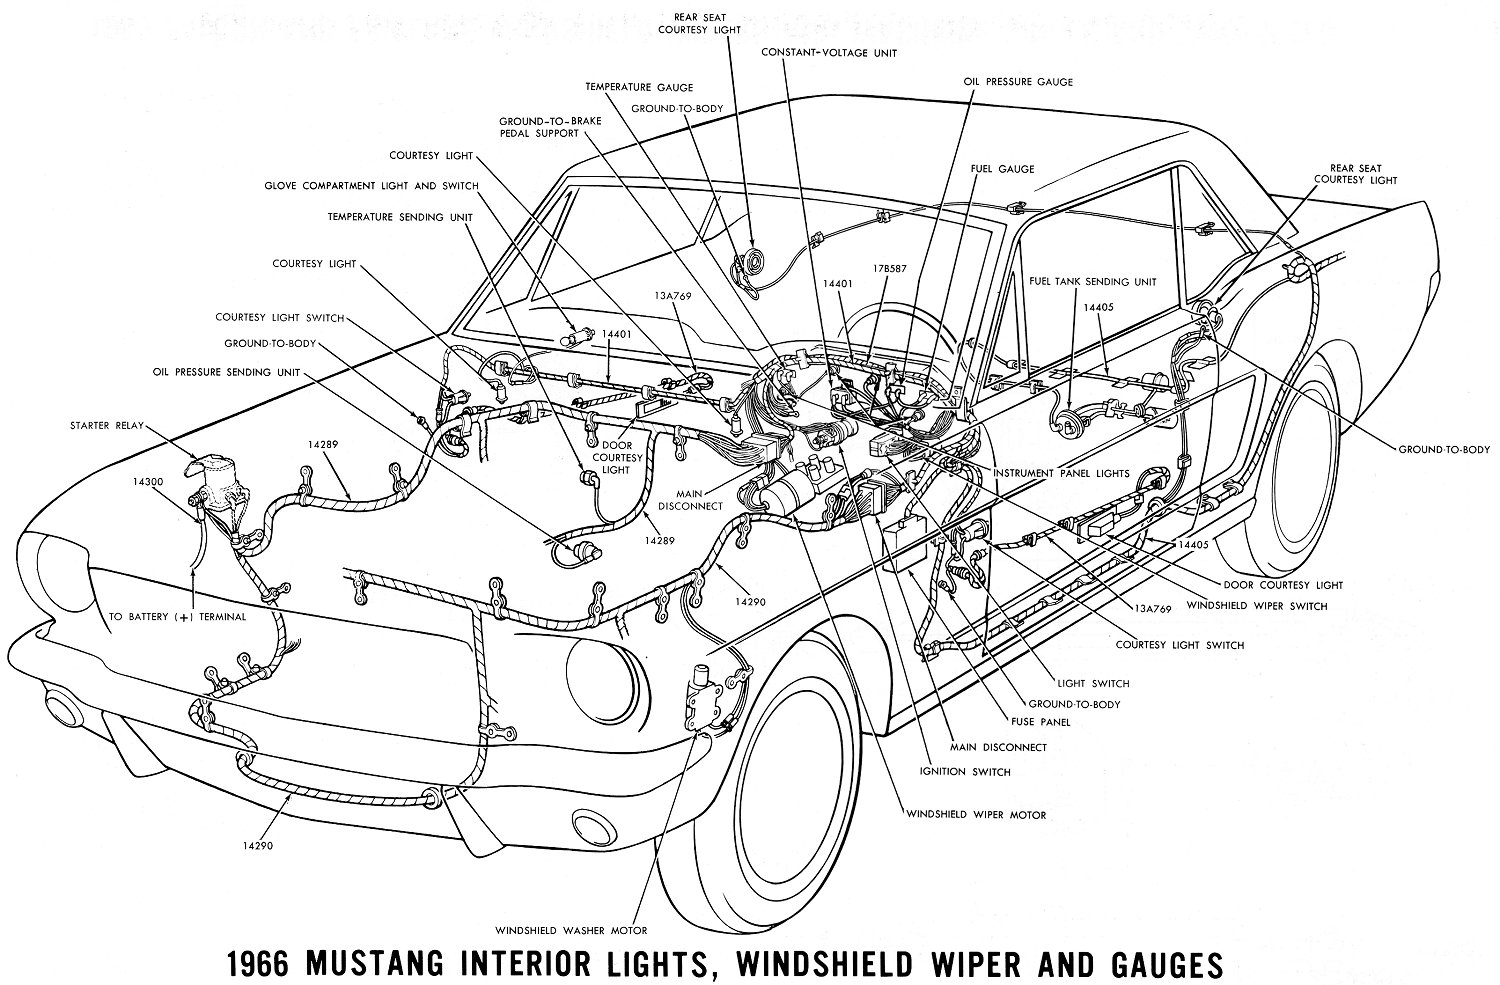 2007 mustang trunk diagrams. wiring diagrams. forbiddendoctor, Wiring diagram